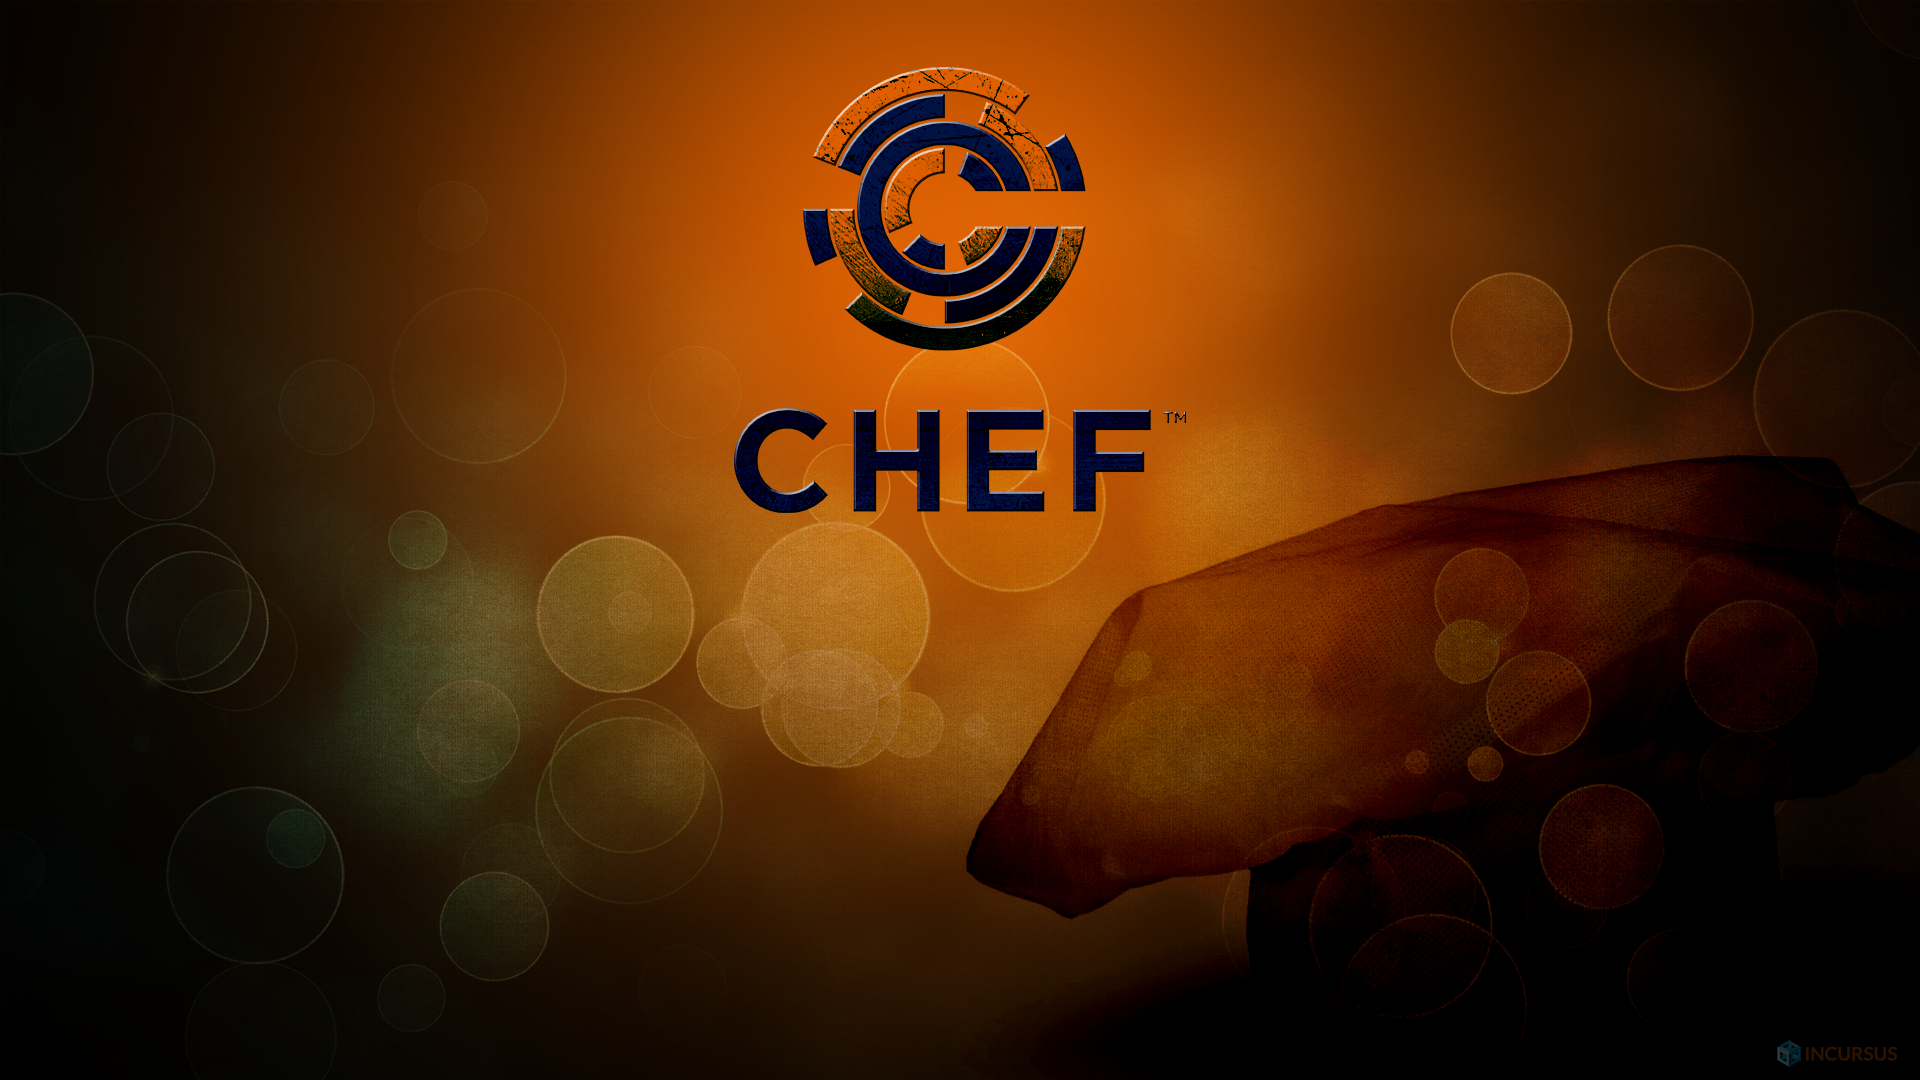 Chef Wallpaper 1920x1080 Incursus HD Wallpapers Download Free Images Wallpaper [1000image.com]